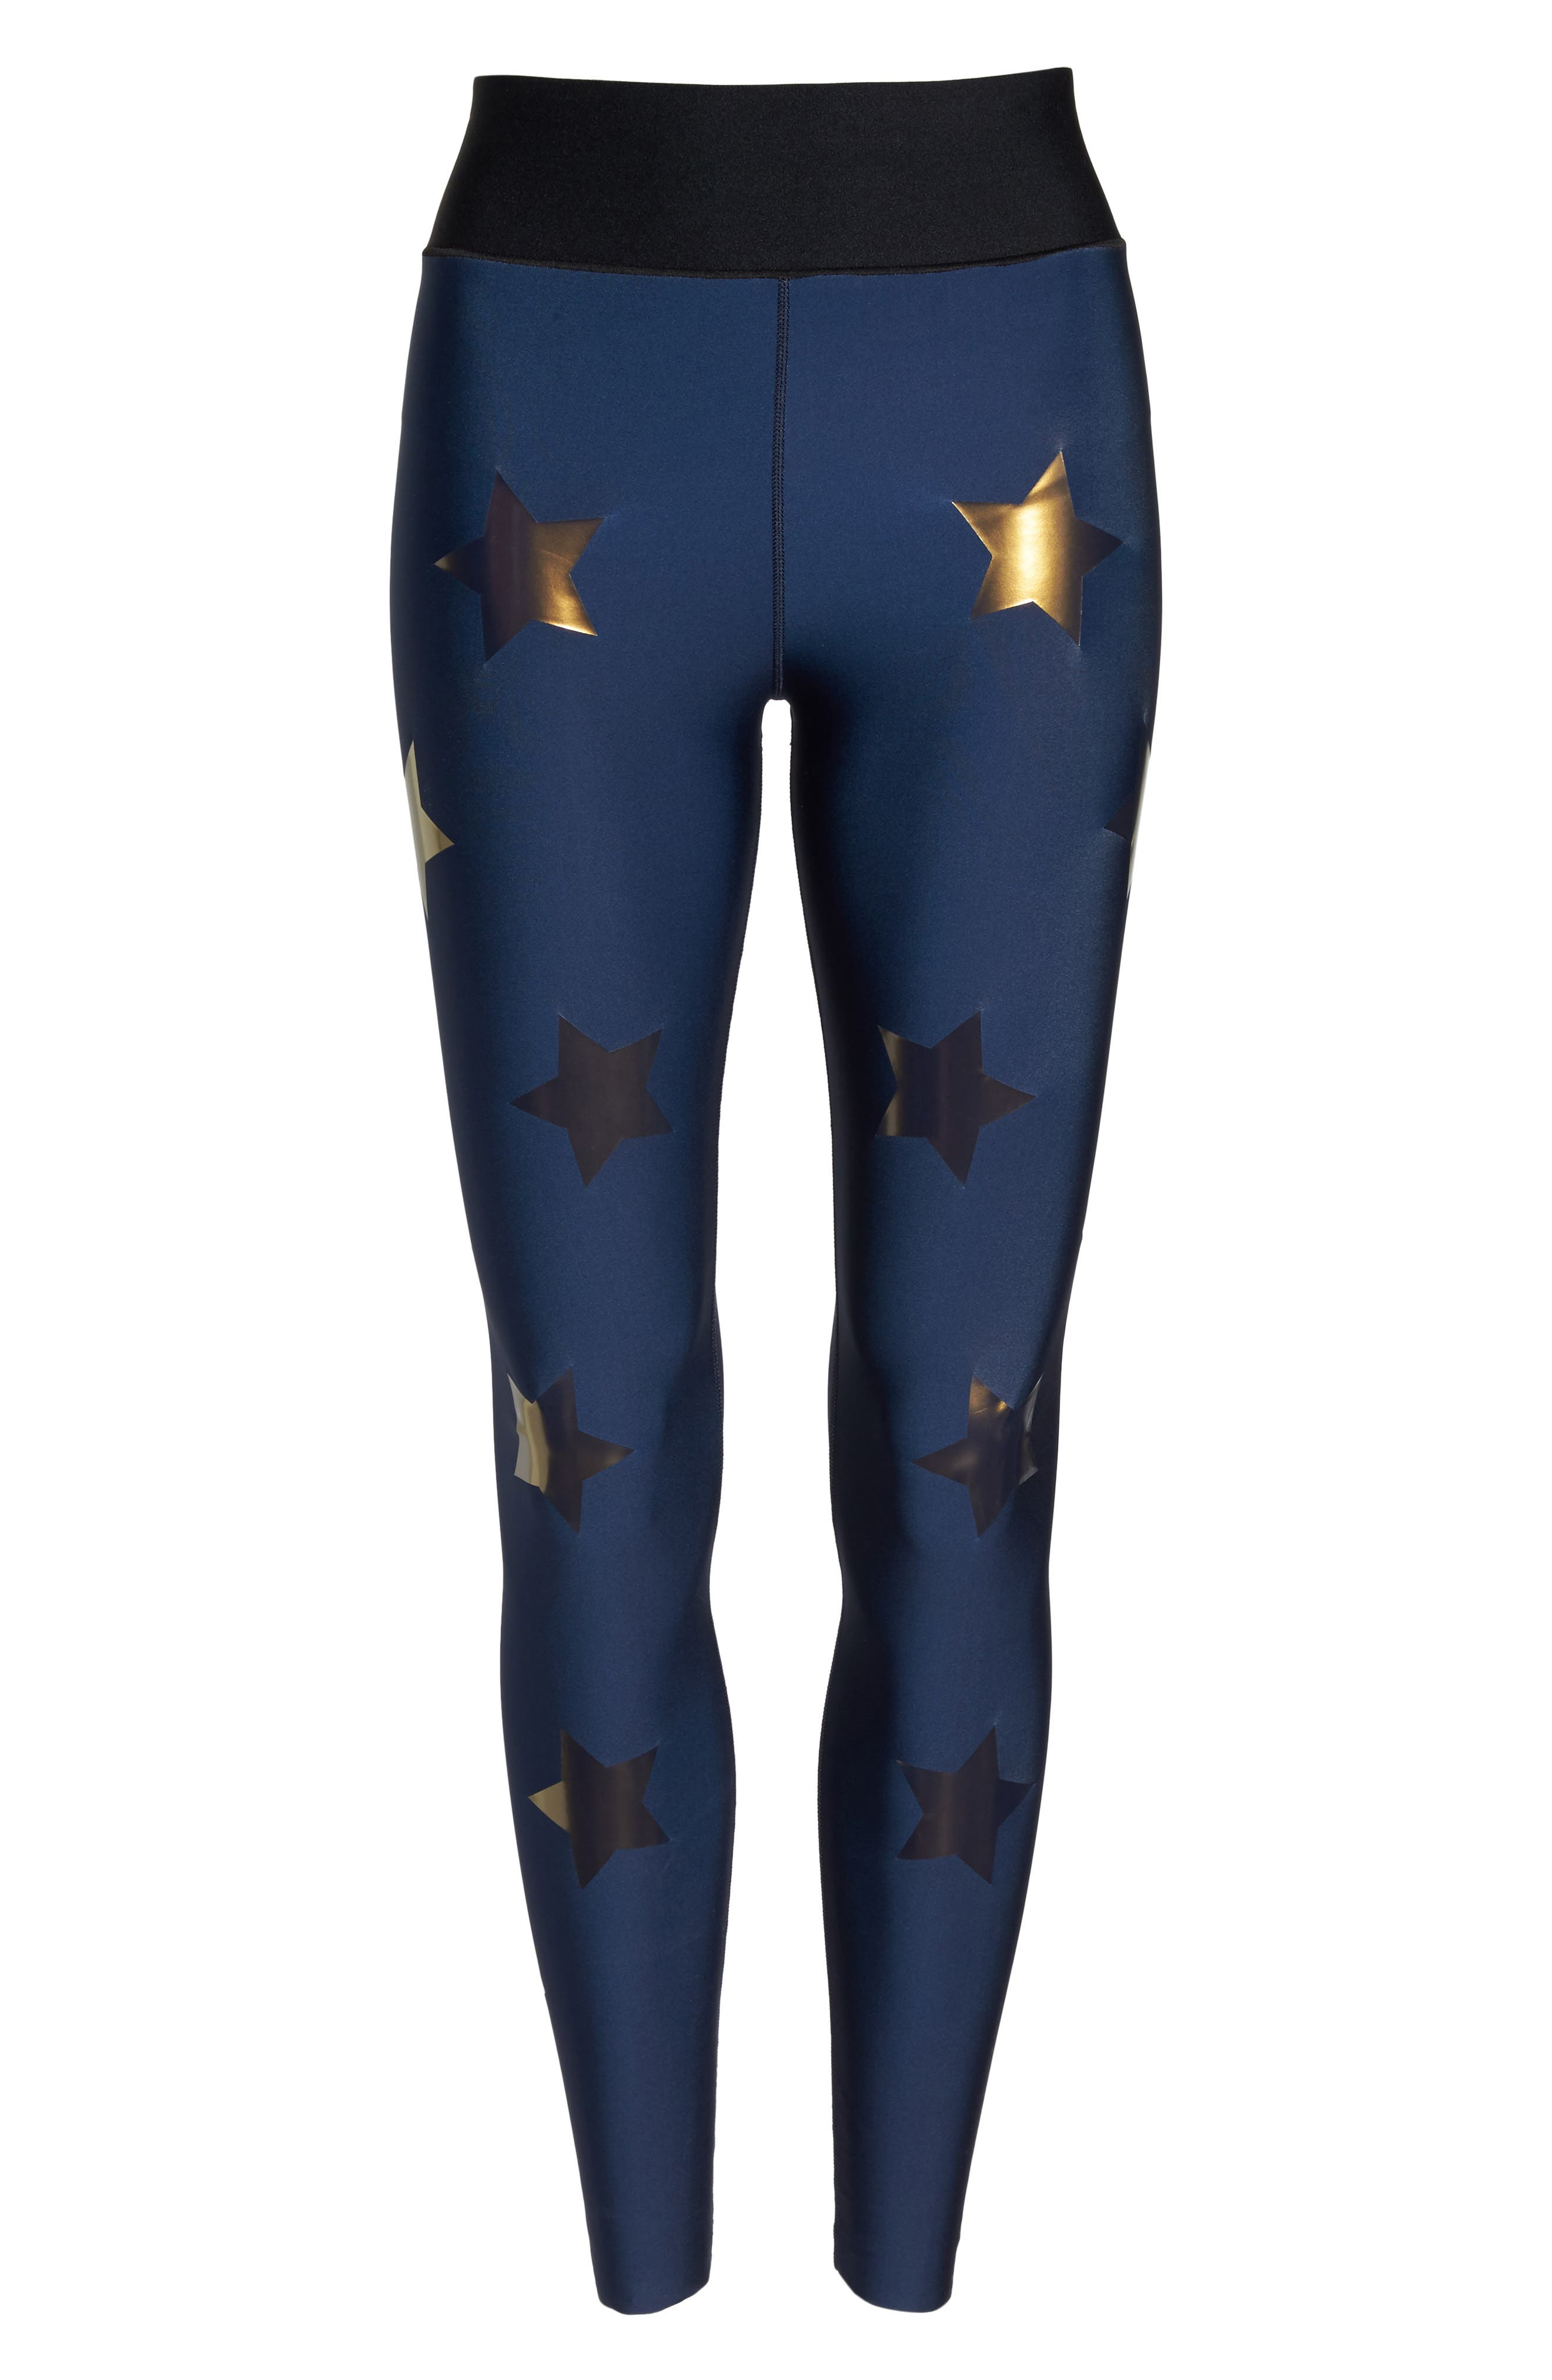 Lux Knockout Leggings,                             Alternate thumbnail 7, color,                             Obig - Oxford Blue Gold